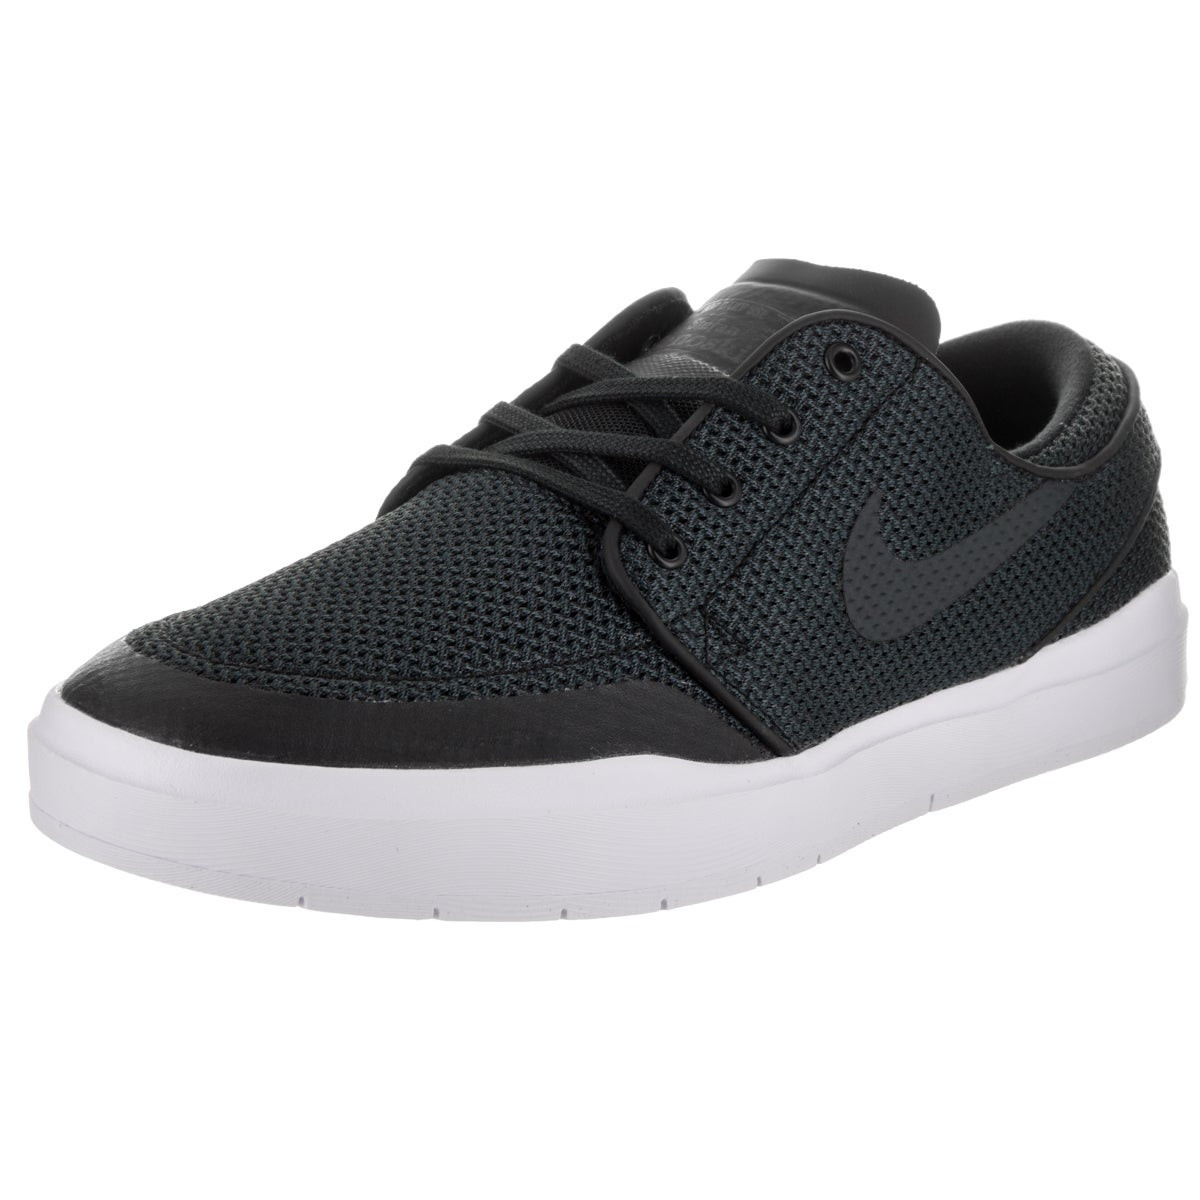 huge discount 6d683 3e4a8 Nike Men s Stefan Janoski Hyperfeel XT Skate Shoes